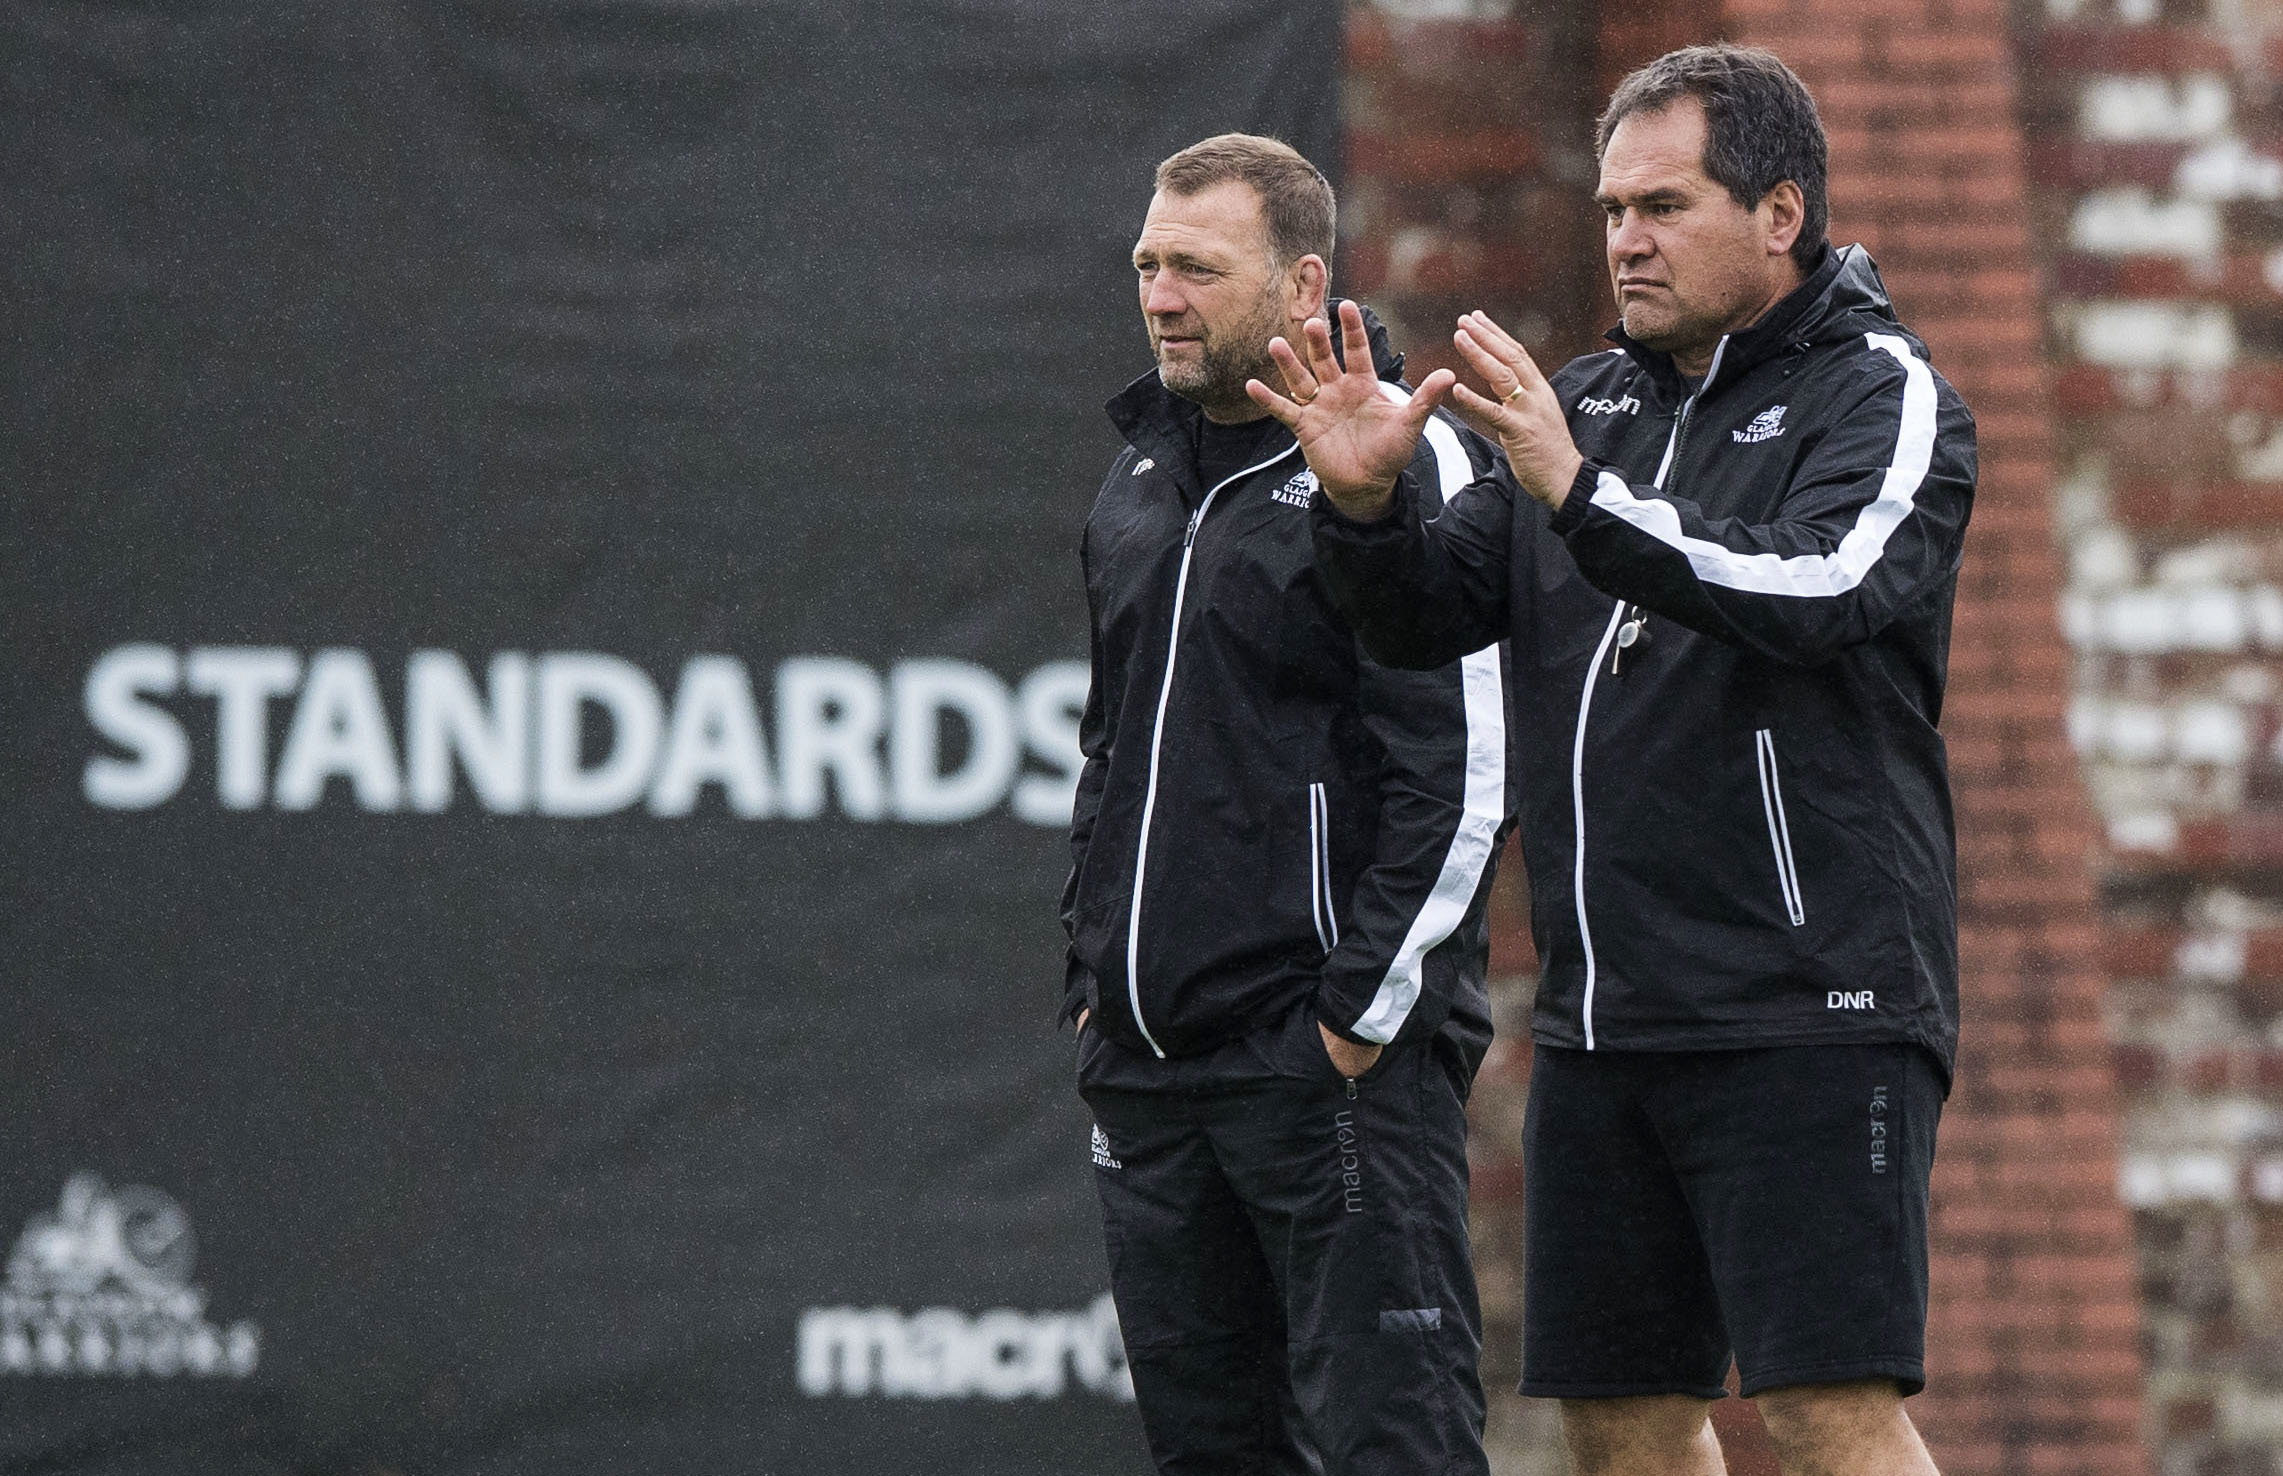 Glasgow Warriors head coach Dave Rennie (right) and coach Jonathan Humphreys make their message clear at training.